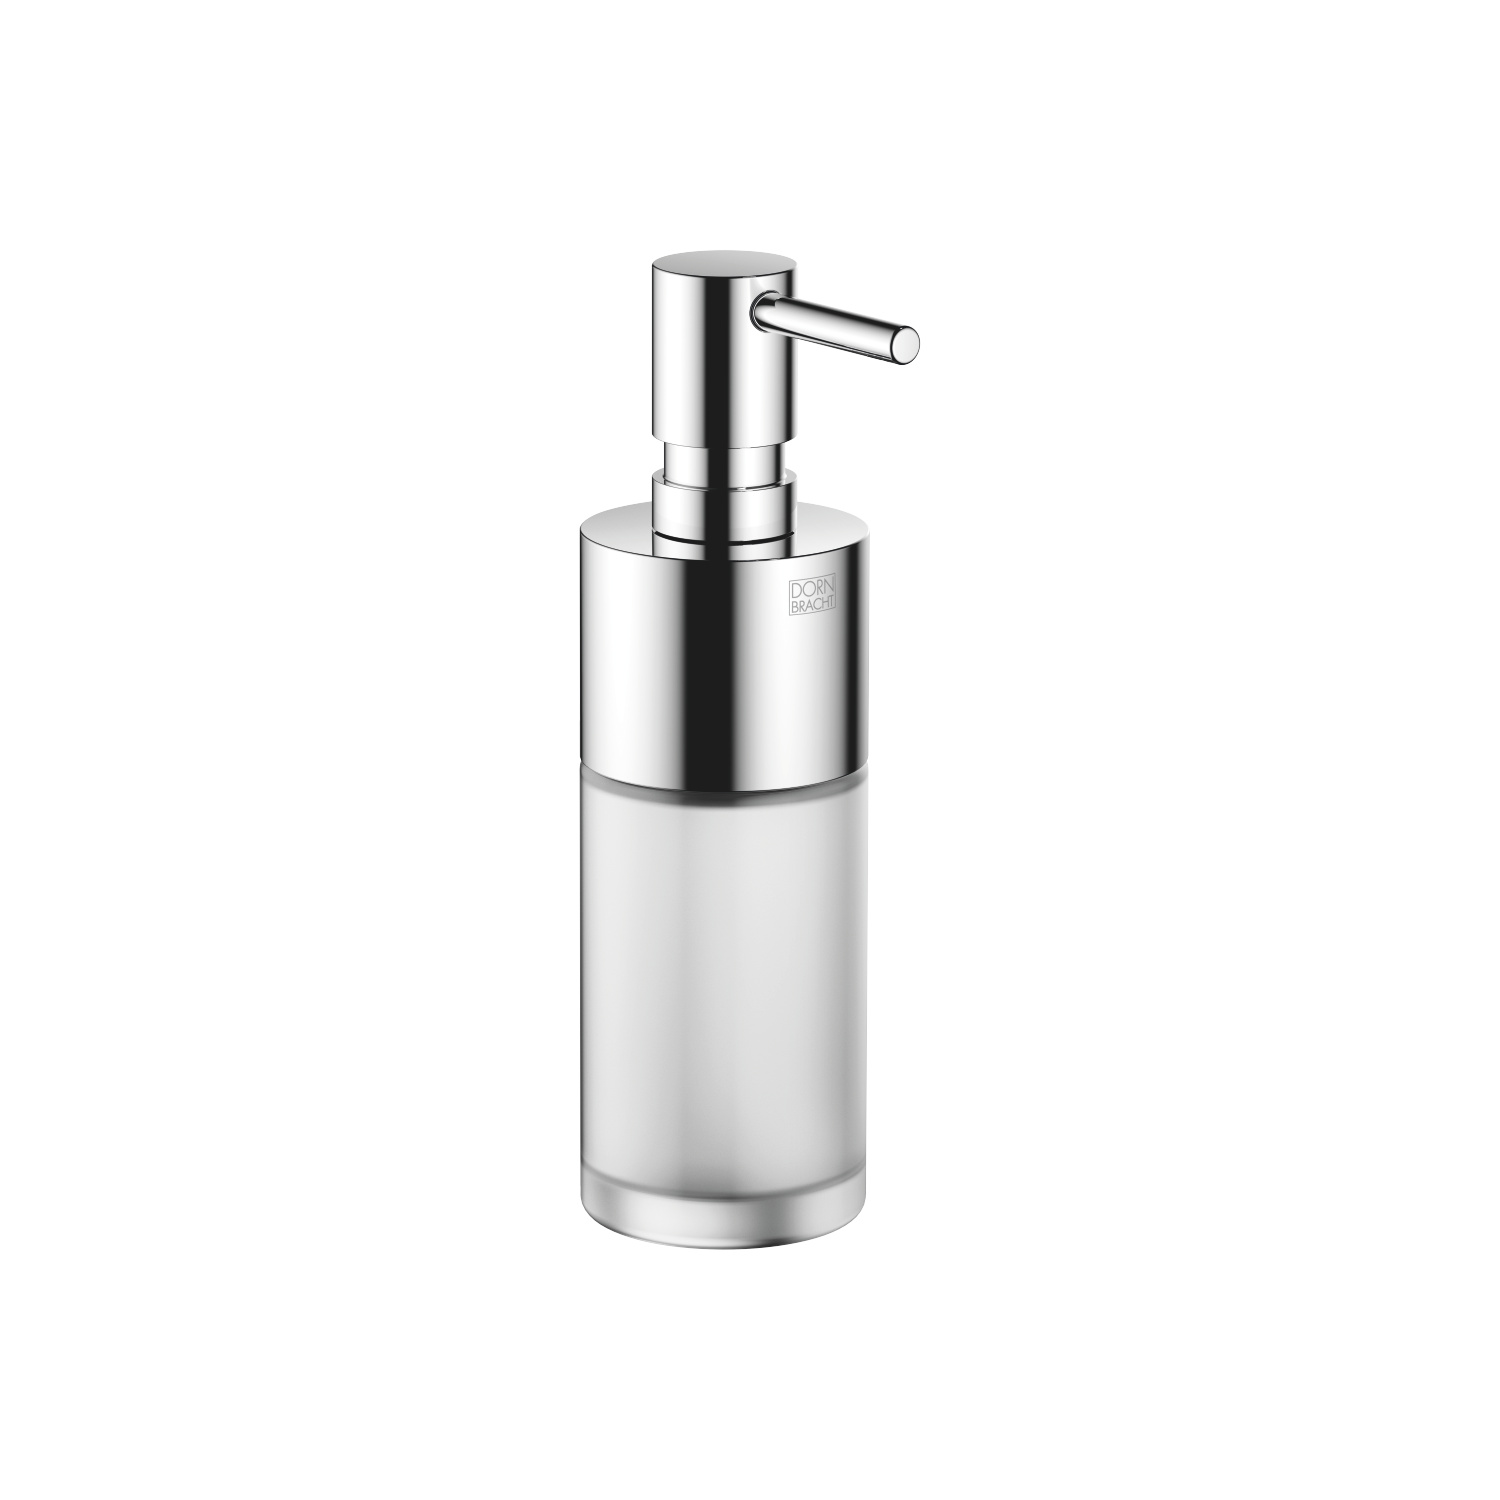 Dispenser free-standing model - polished chrome - 84 435 970-00